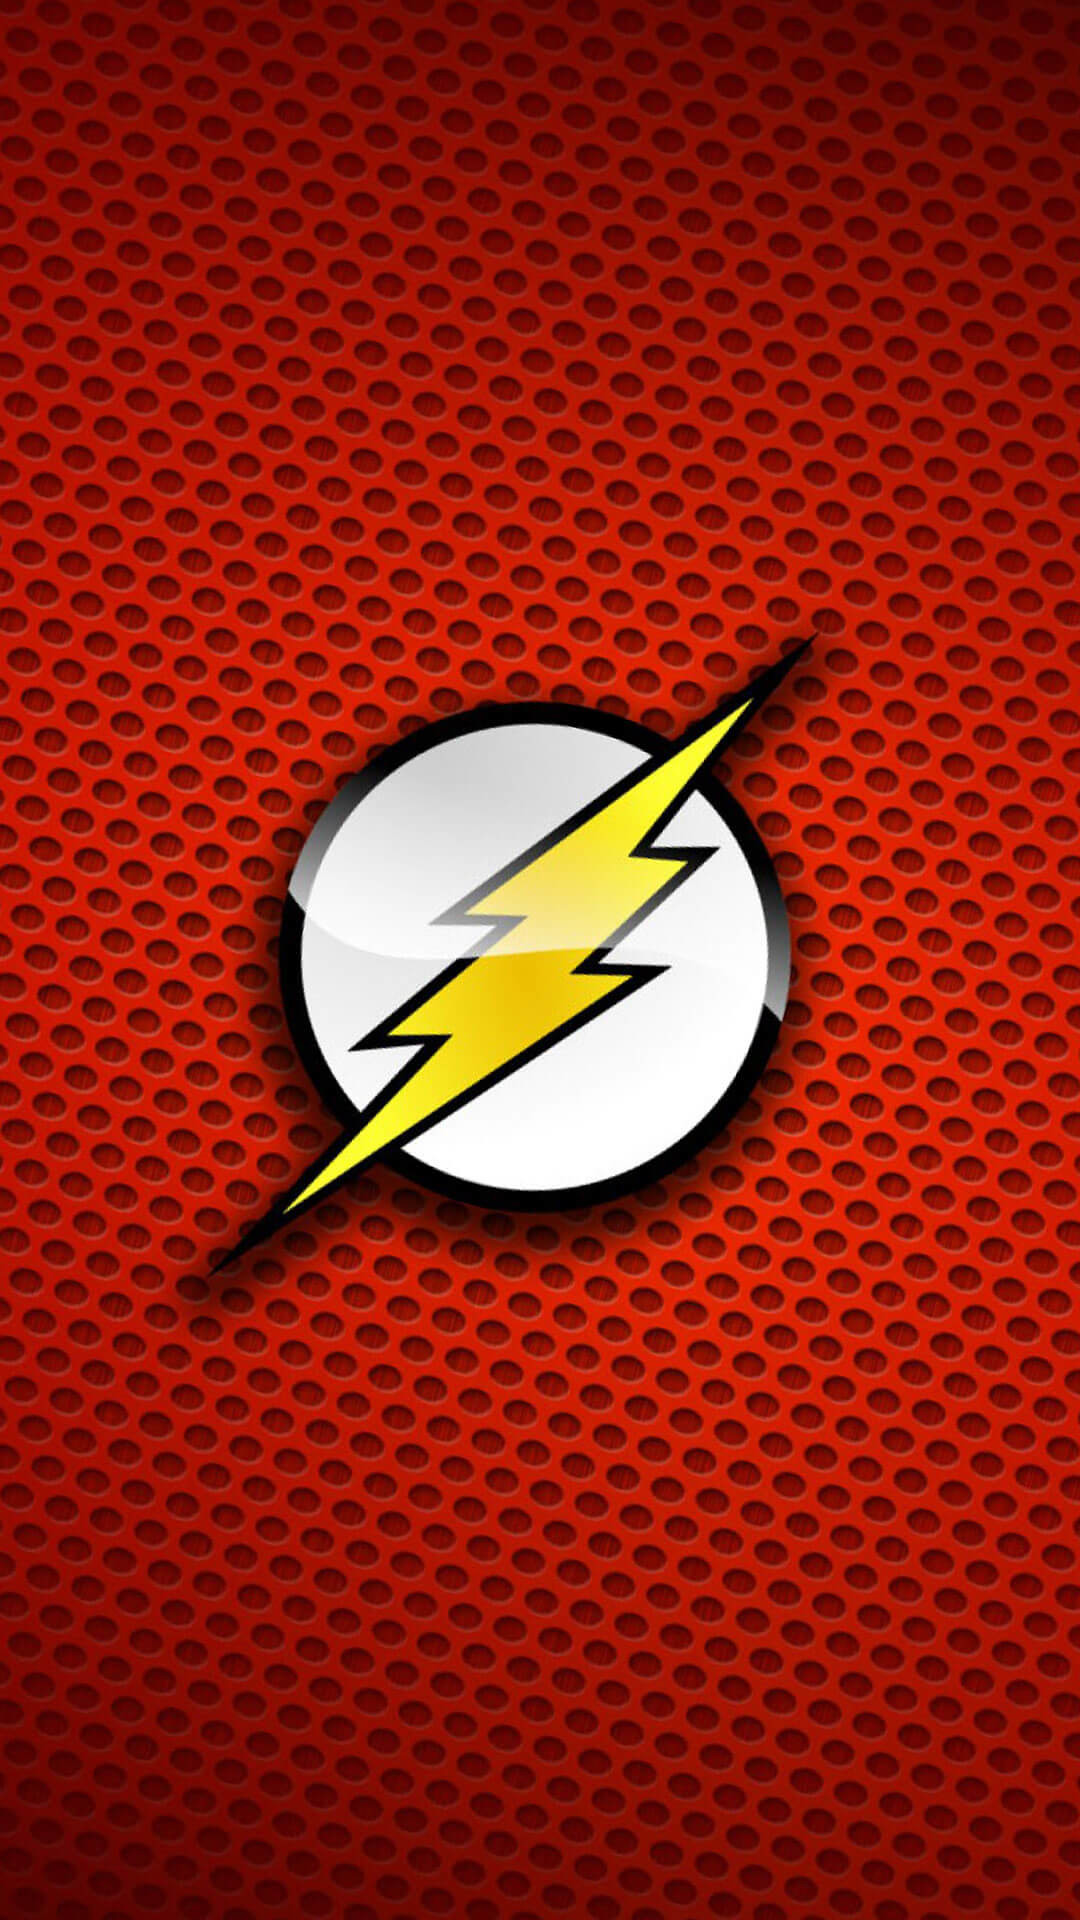 the flash phone wallpaper, pics of the flash superhero